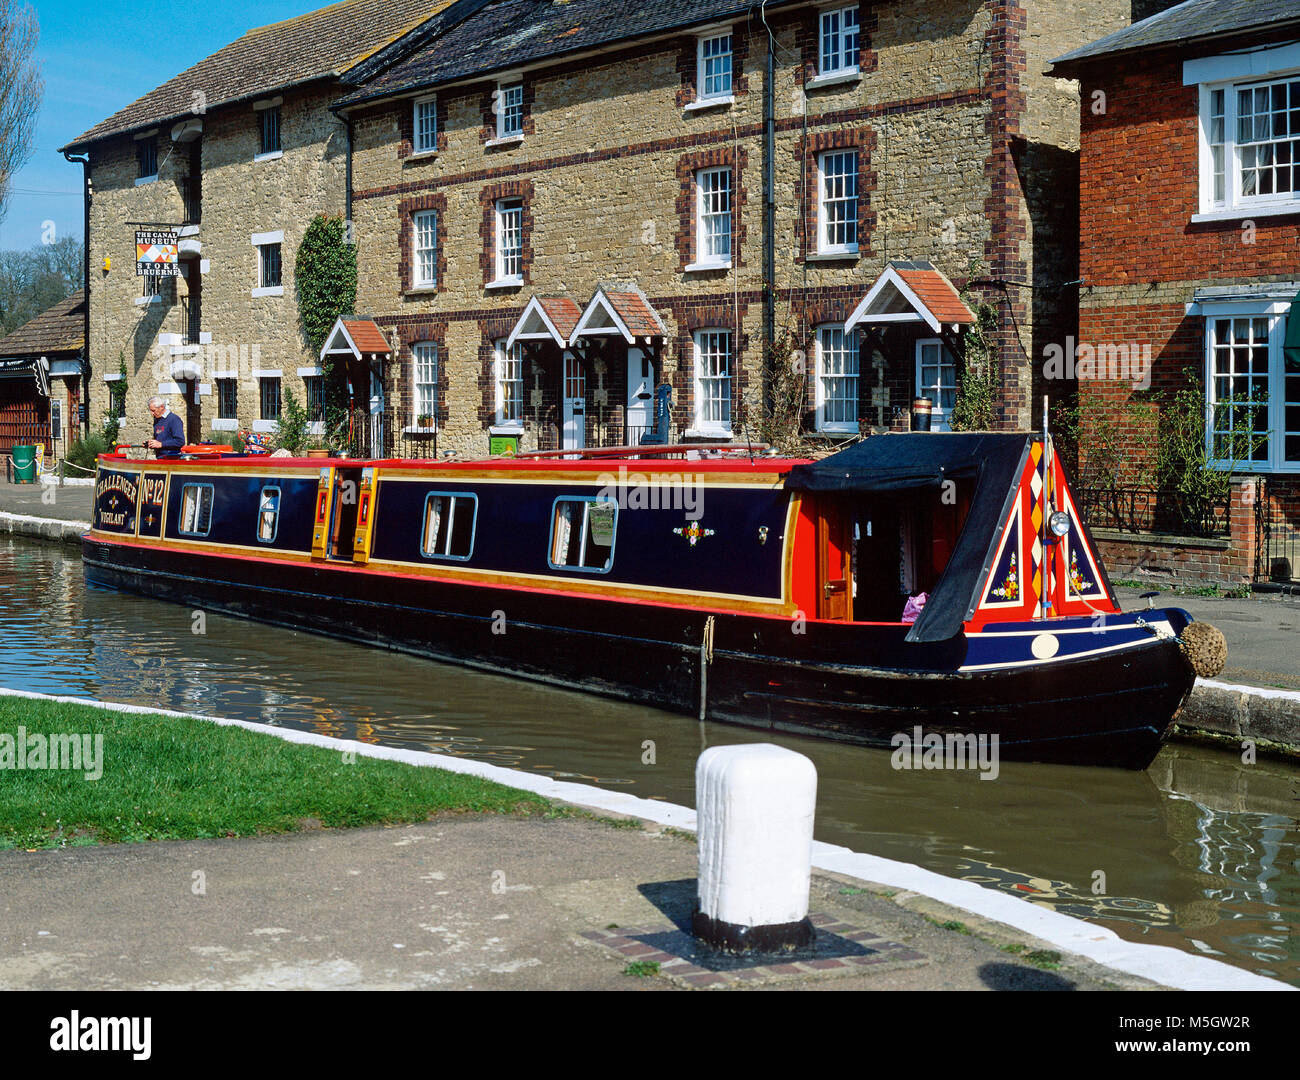 The Waterways Museum at Stoke Bruerne, Northamptonshire, at the top of Stoke Bruern locks on the Grand Union Canal - Stock Image